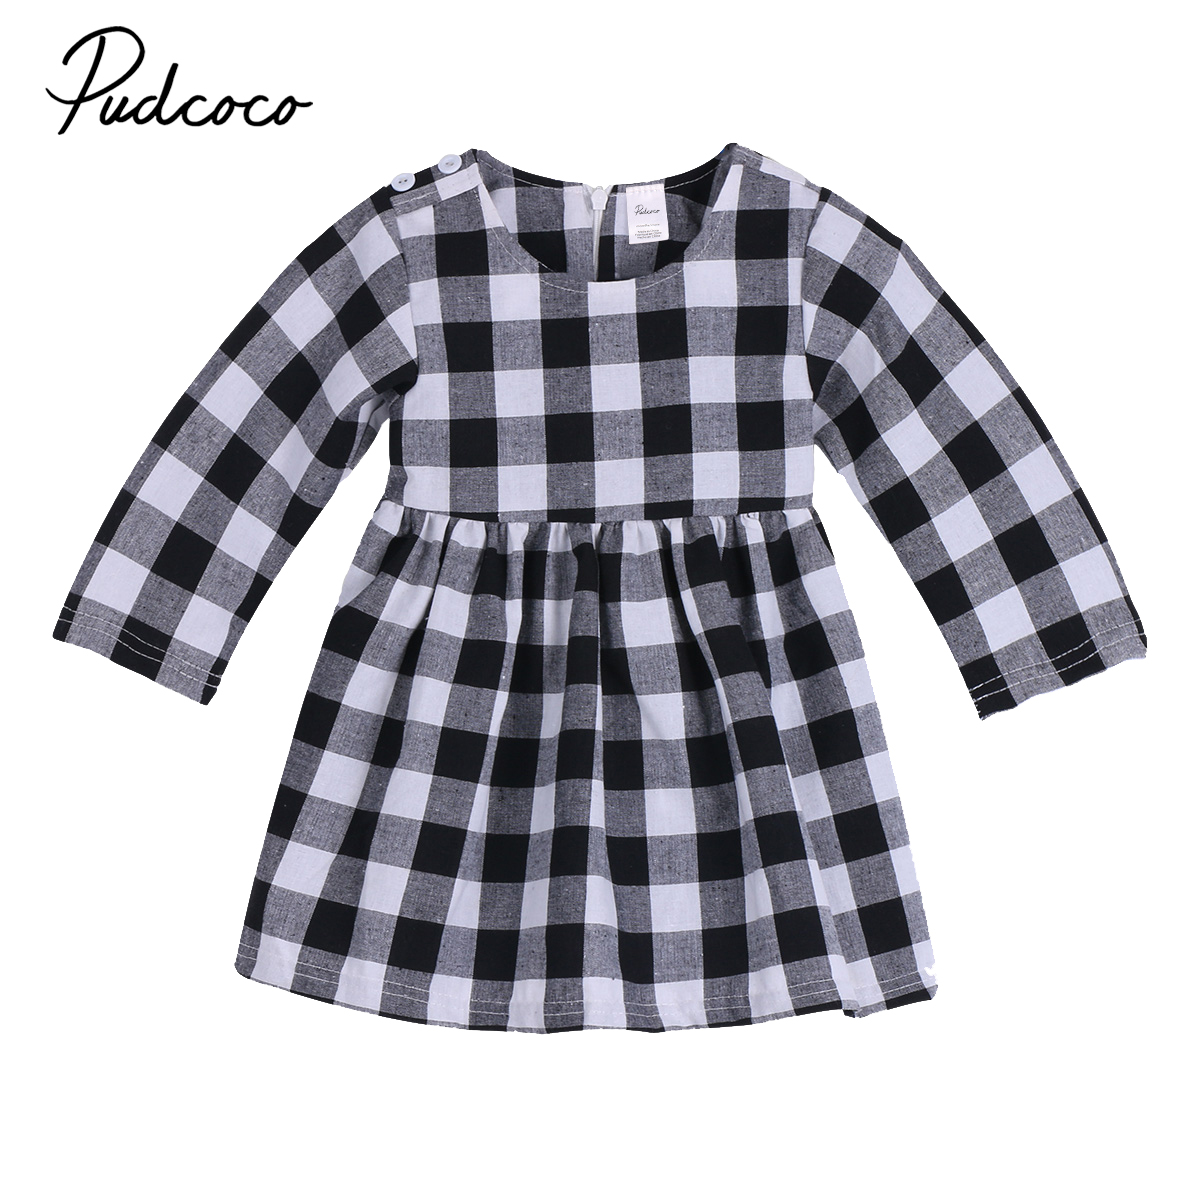 Pudcoco Cotton Newborn Baby Girls Toddler Kids Plaid Clothing Cute Dress Party Princess Wedding Tutu Long Sleeve Dresses 0-2T baby girls printed long sleeves dress girls party princess dress baby kids girls cute loose dress girls clothing 3 7ys